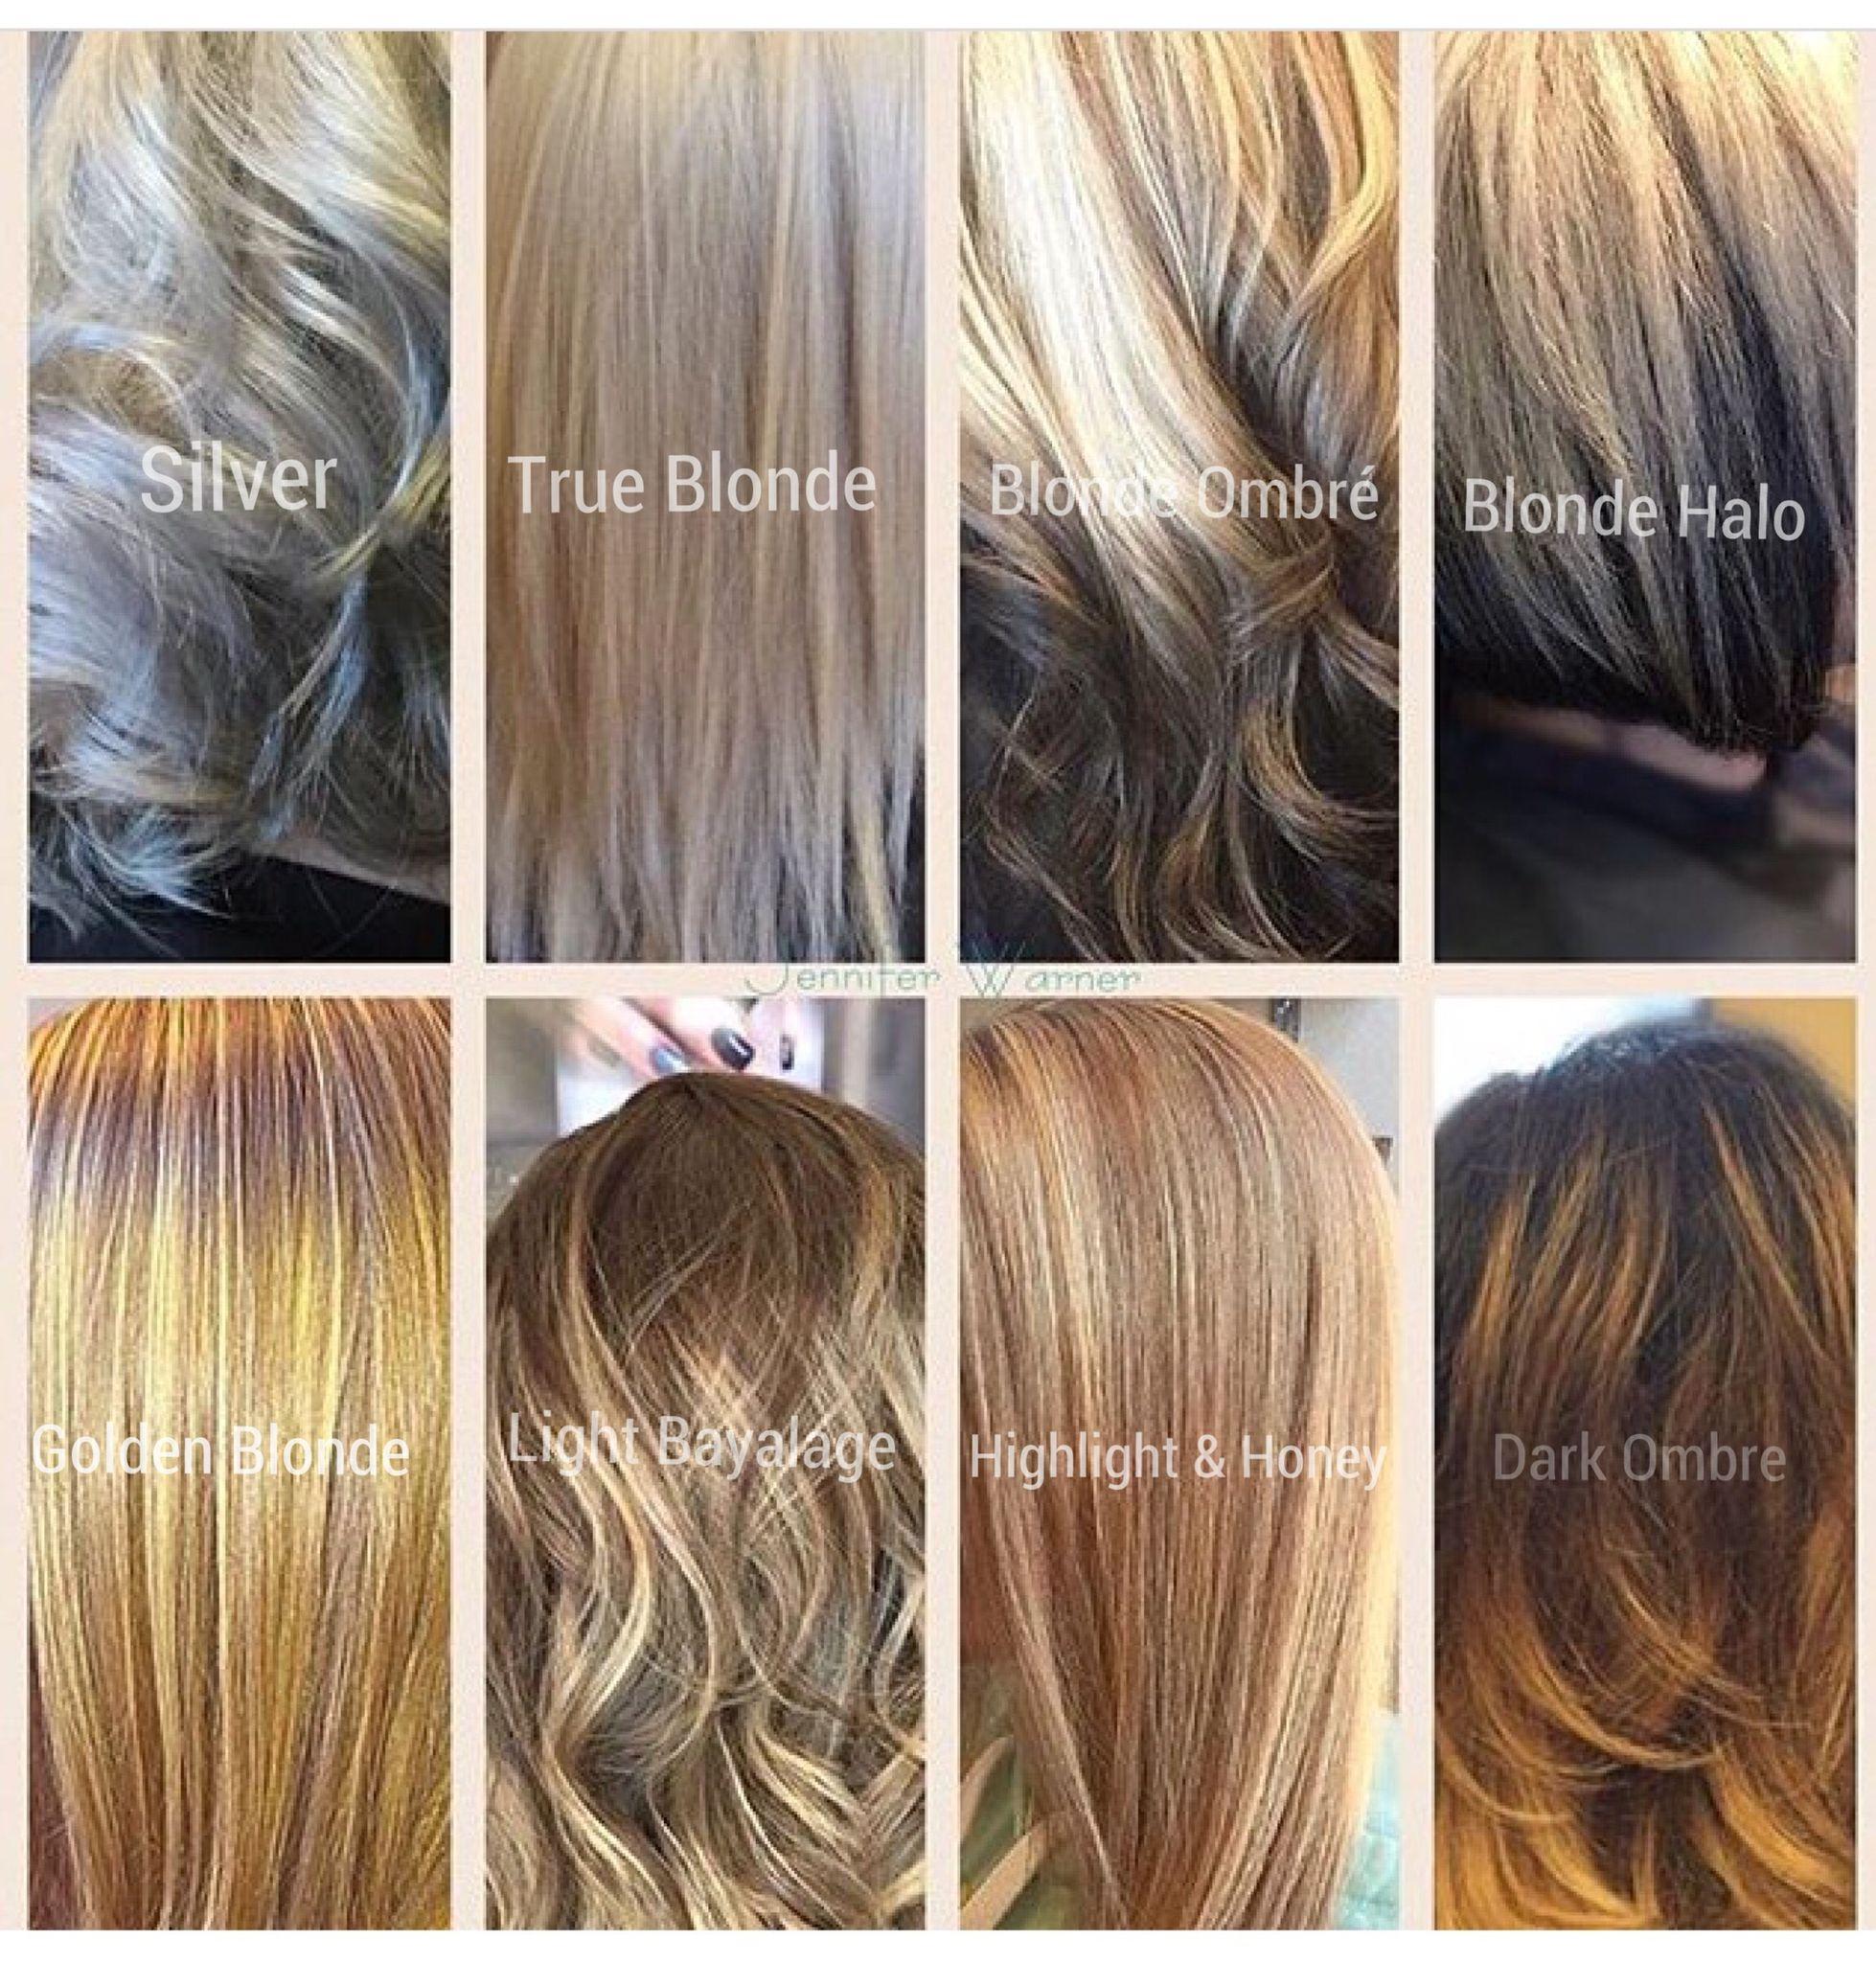 Blonde Hair Color Chart By Jennifer Warner From Silver Blonde To Dark Bayalage With Many Colors In Betwee Blonde Hair Color Chart Blonde Hair Color Hair Color